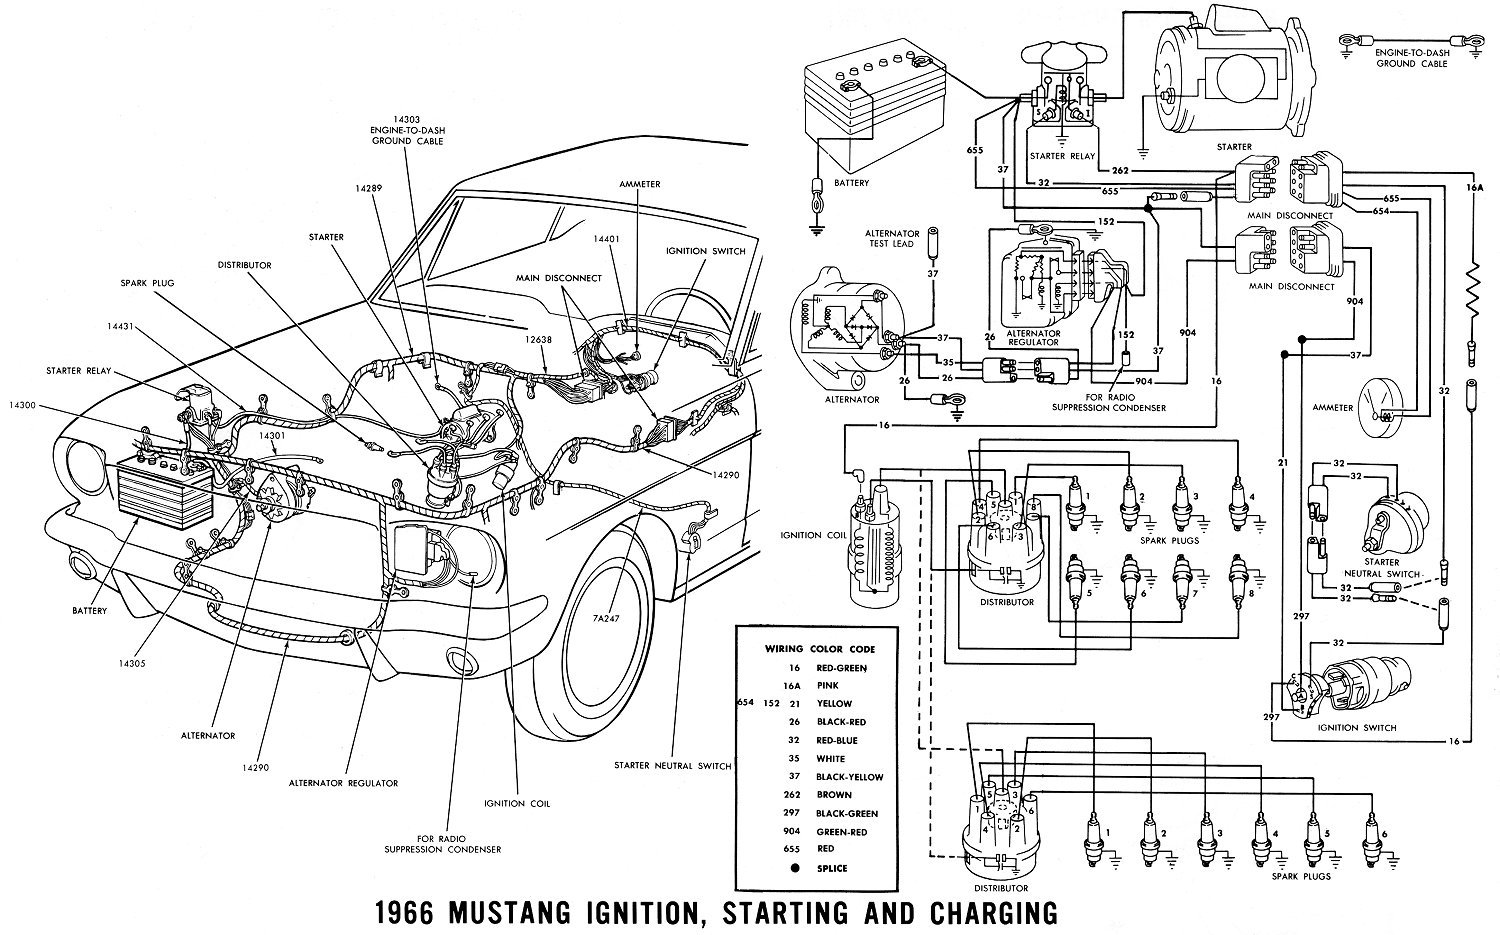 2o29f Remove Starter 94 Dodge Grand Caravan Le 3 furthermore 2001 Audi S4 Parts Diagram as well Engine Wiring Diagram 1998 Chrysler as well Here Is Typical Schematic Of 2009 also 1967 Ford Mustang Instrument Panel. on 2005 bmw air suspension relay location